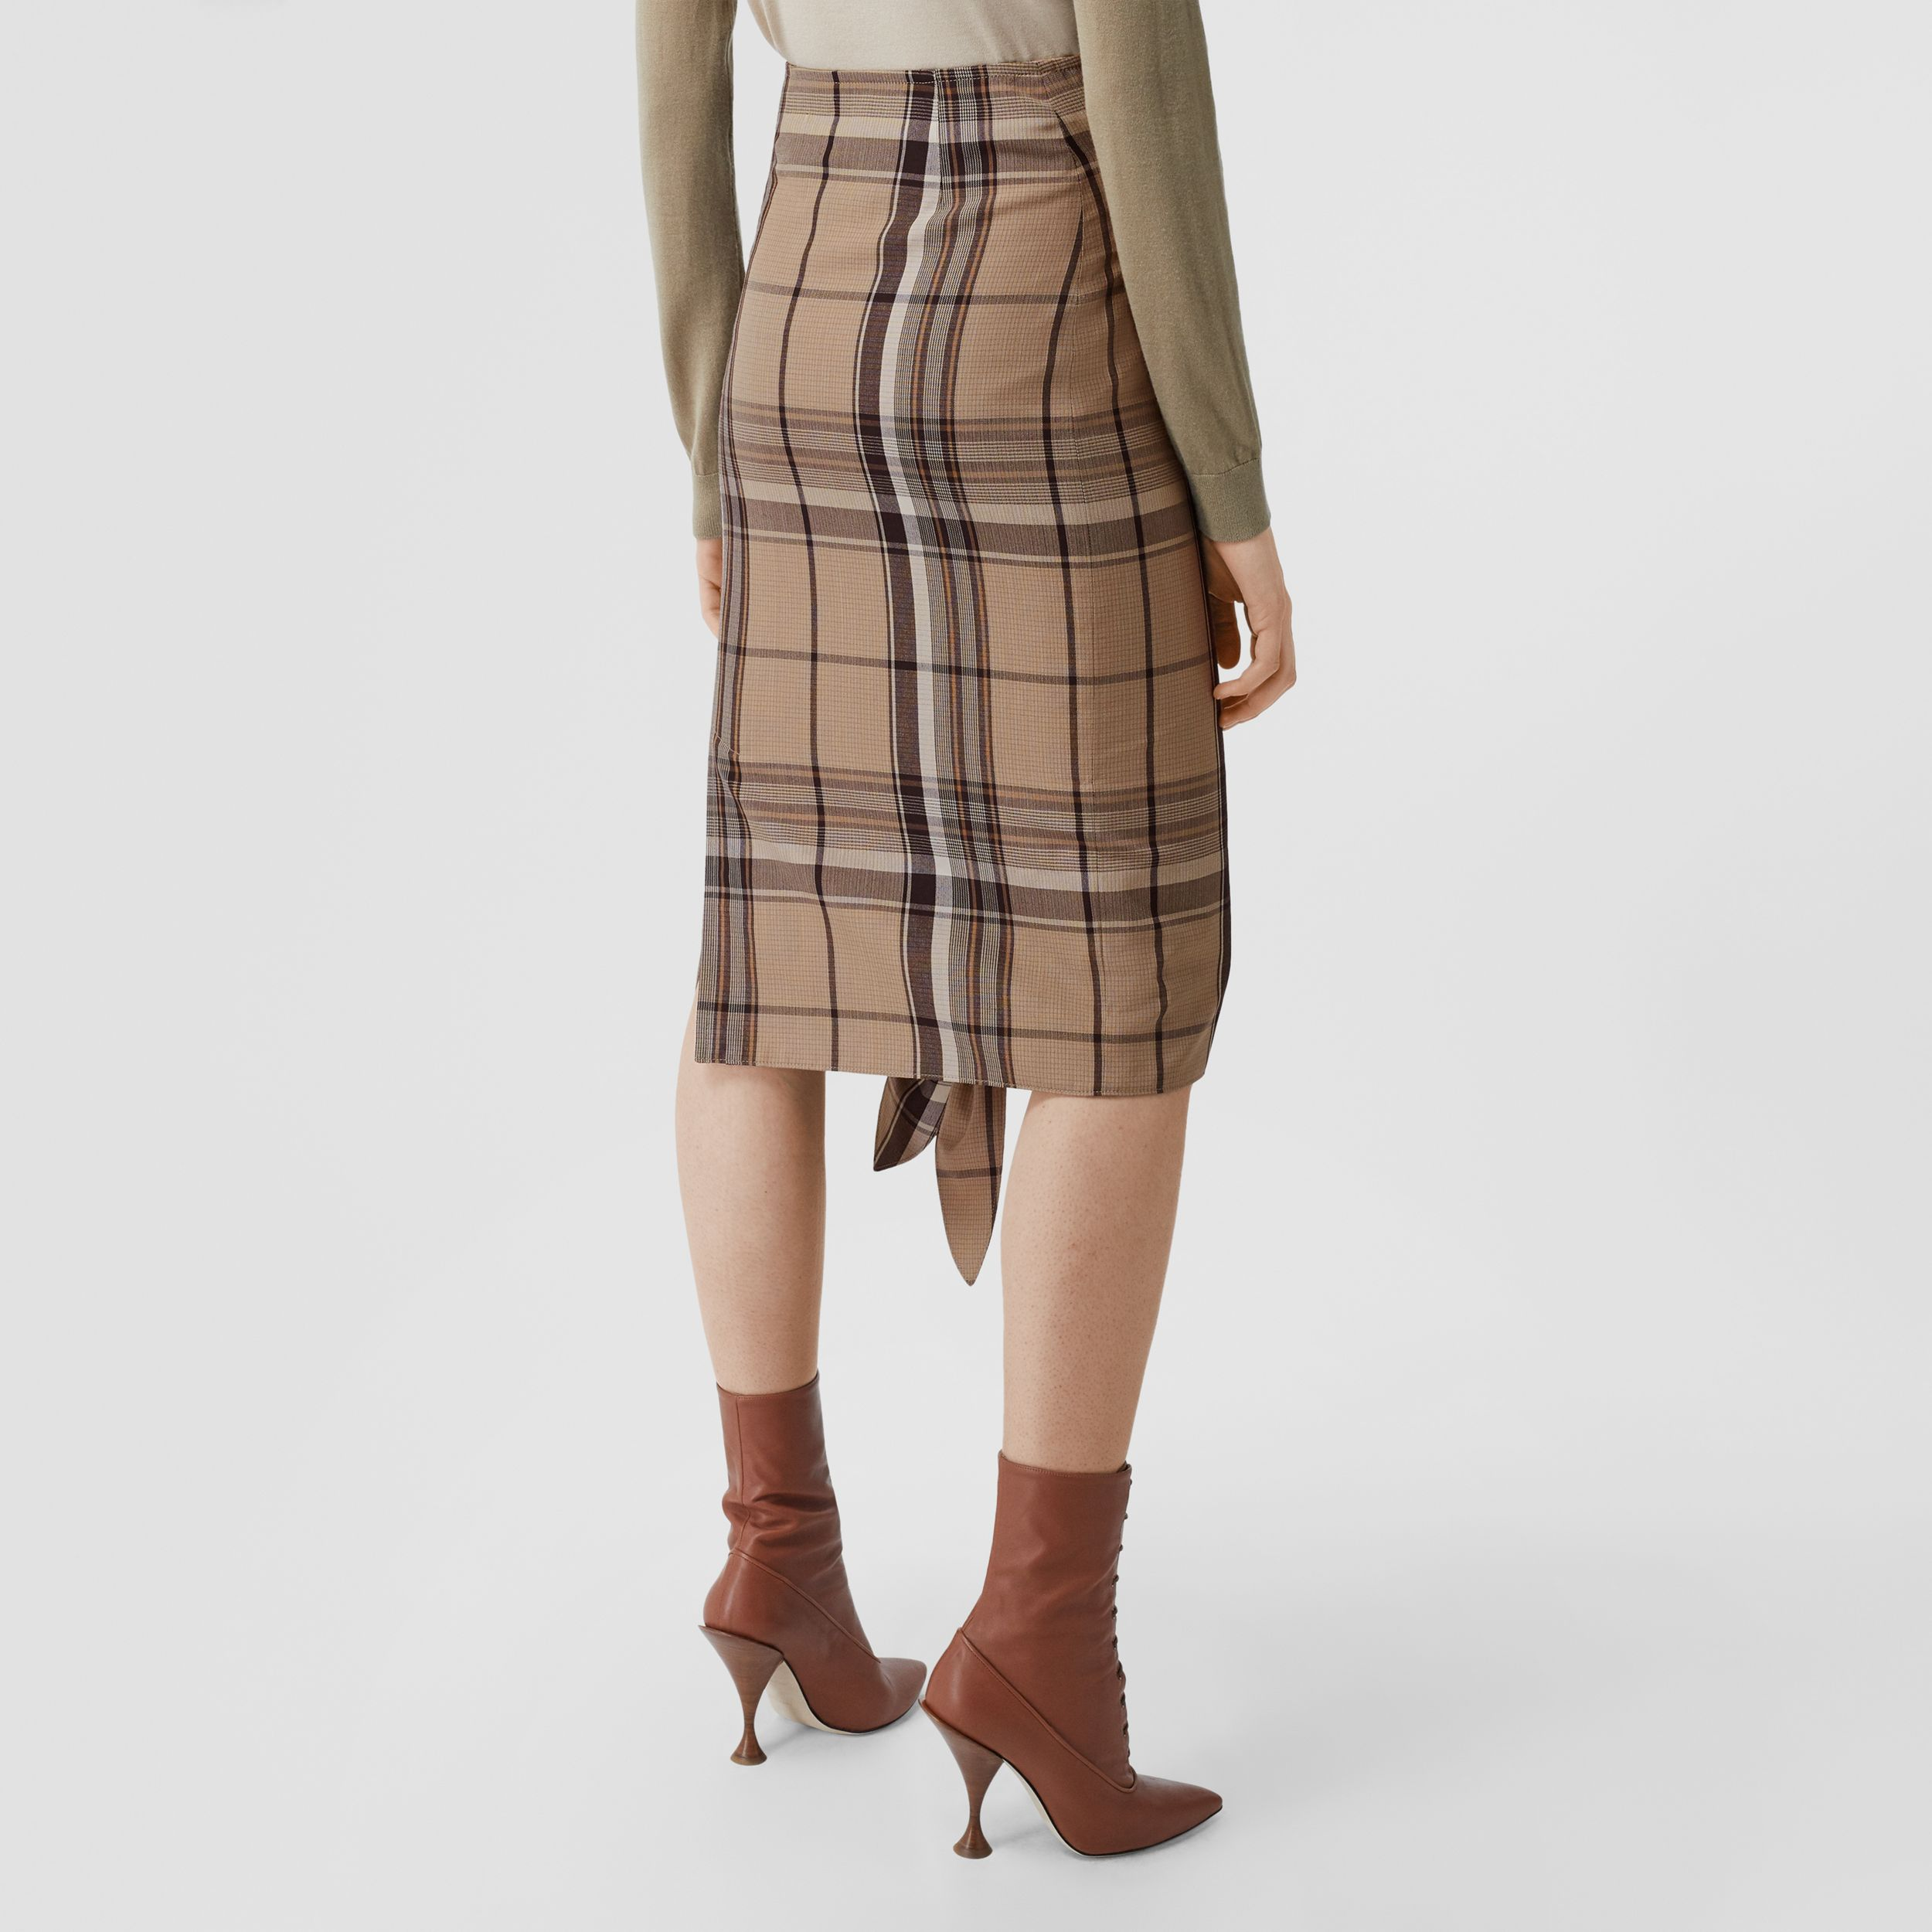 Knot Detail Check Wool Pencil Skirt in Driftwood - Women | Burberry United States - 3